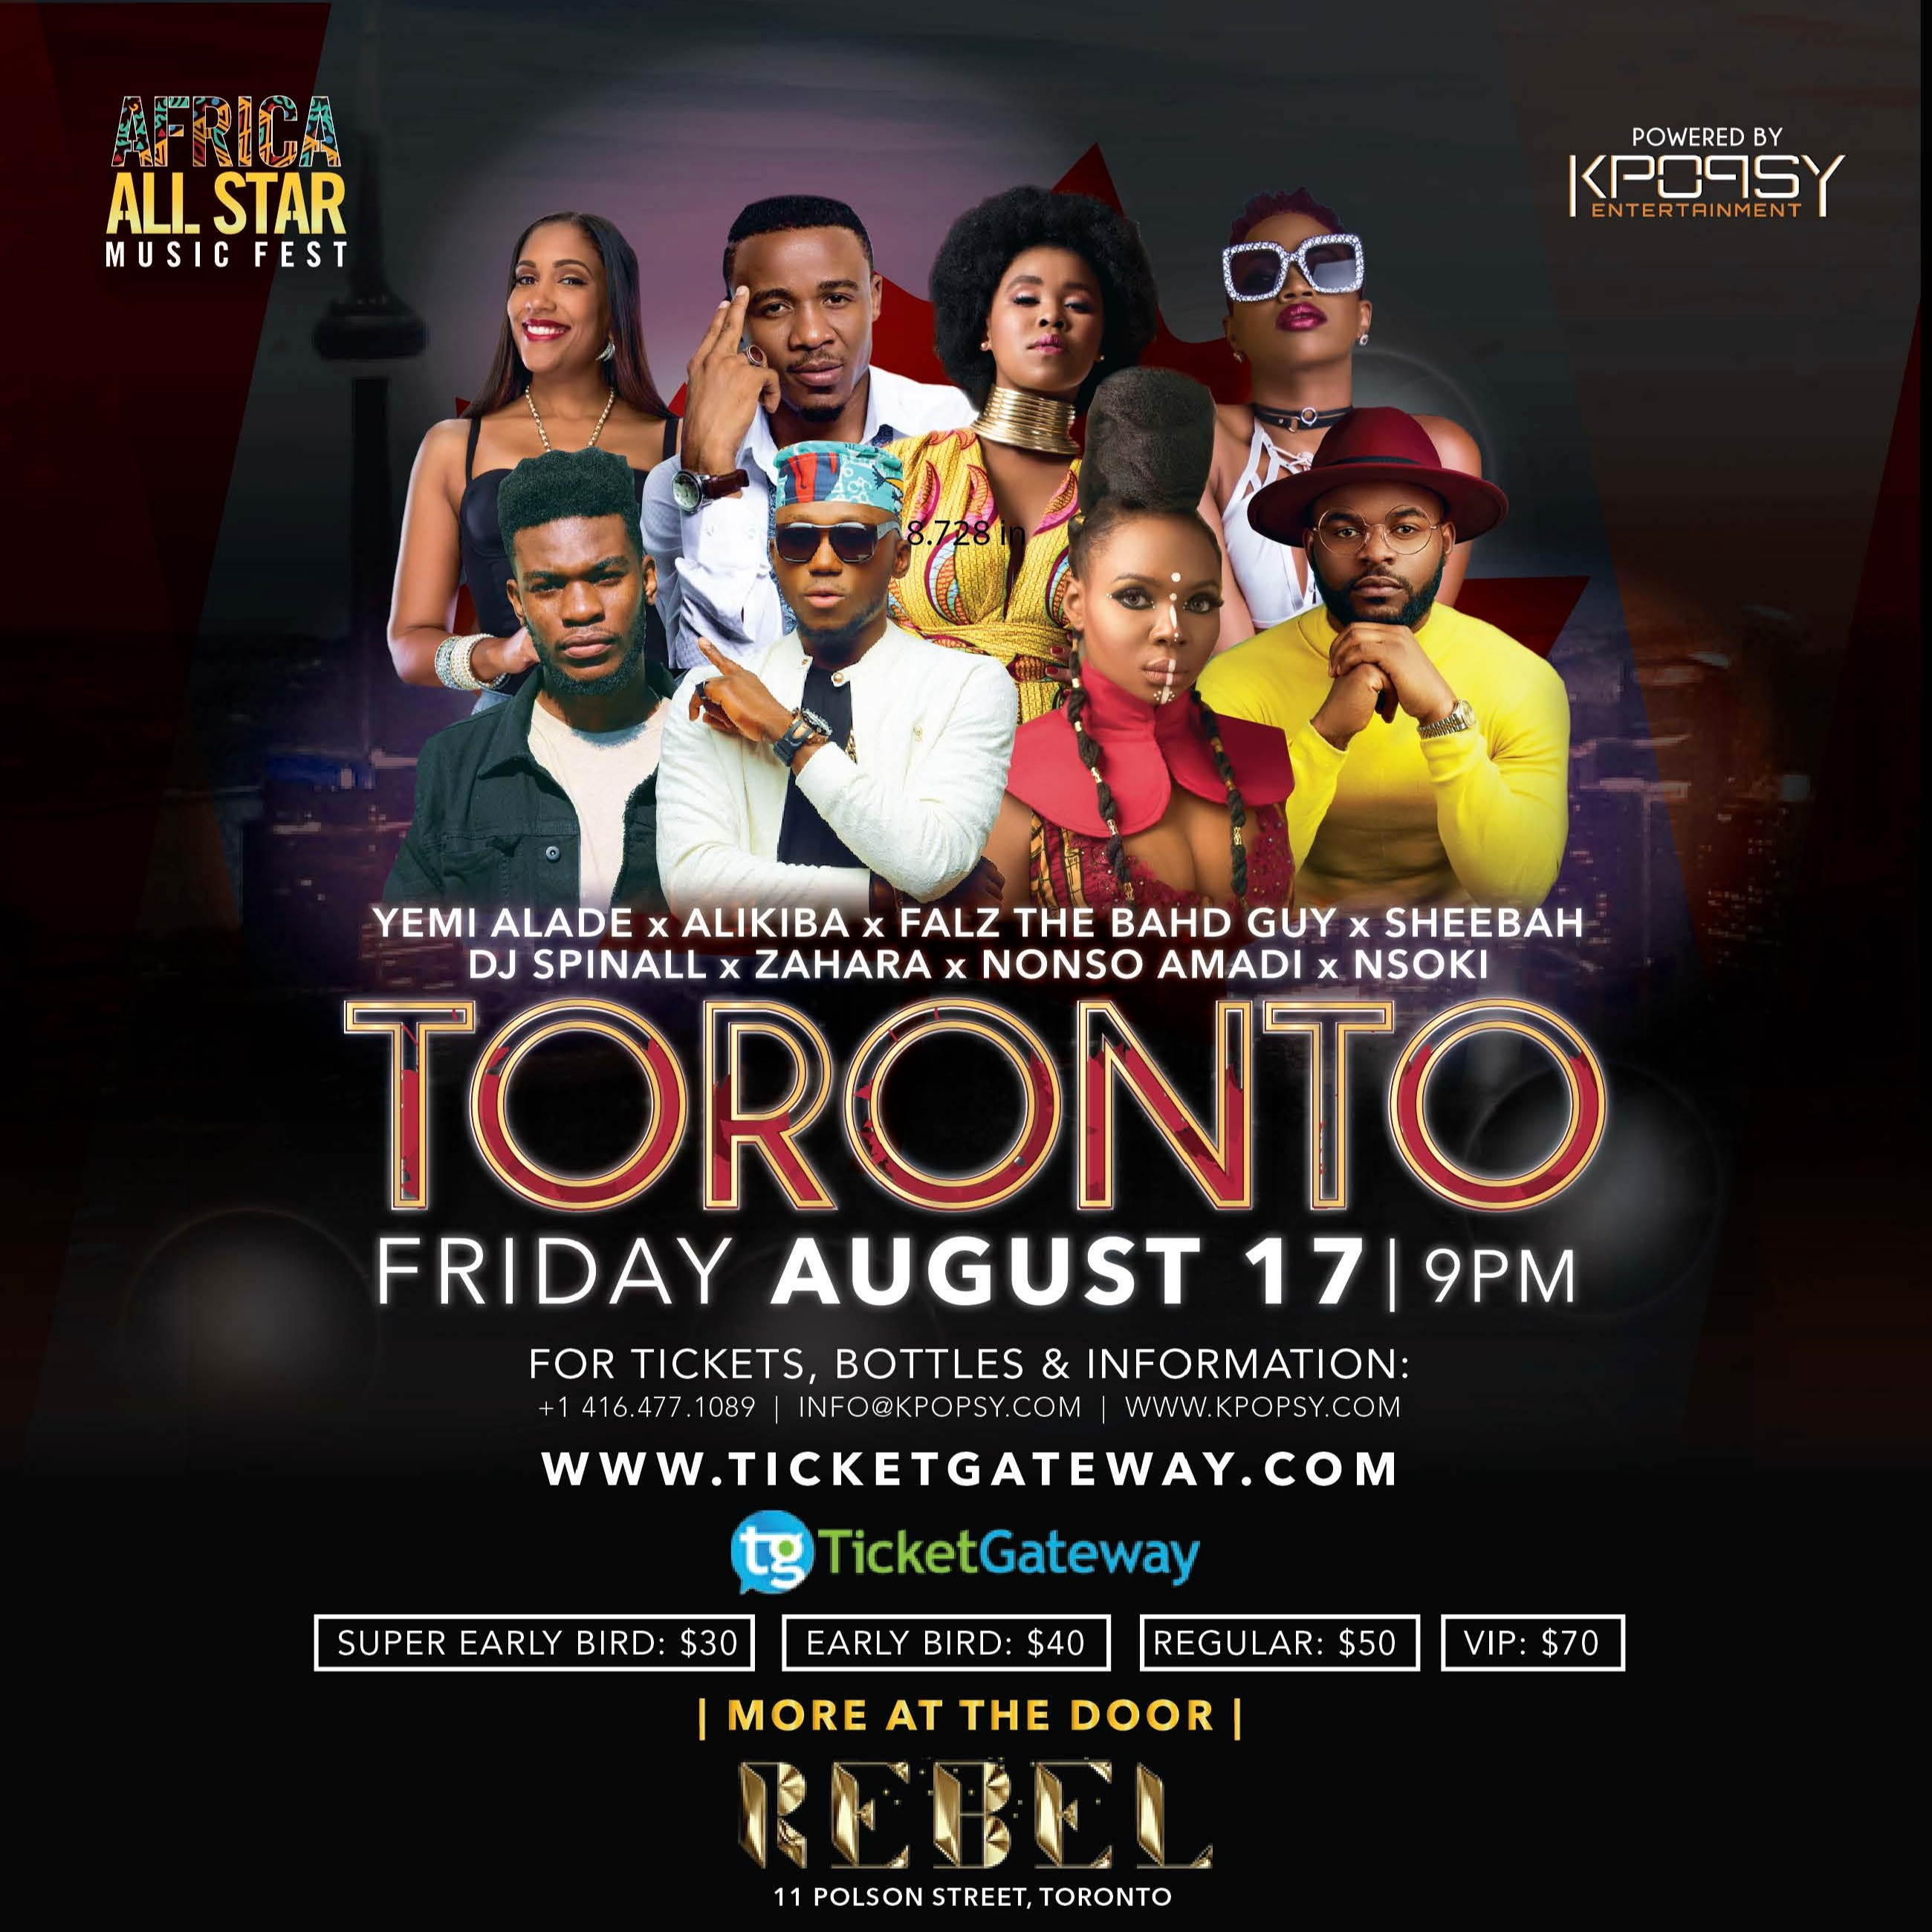 Africa All Star Music Fest - Yemi Alade Alikiba Falz Sheebah Spinall Zahara